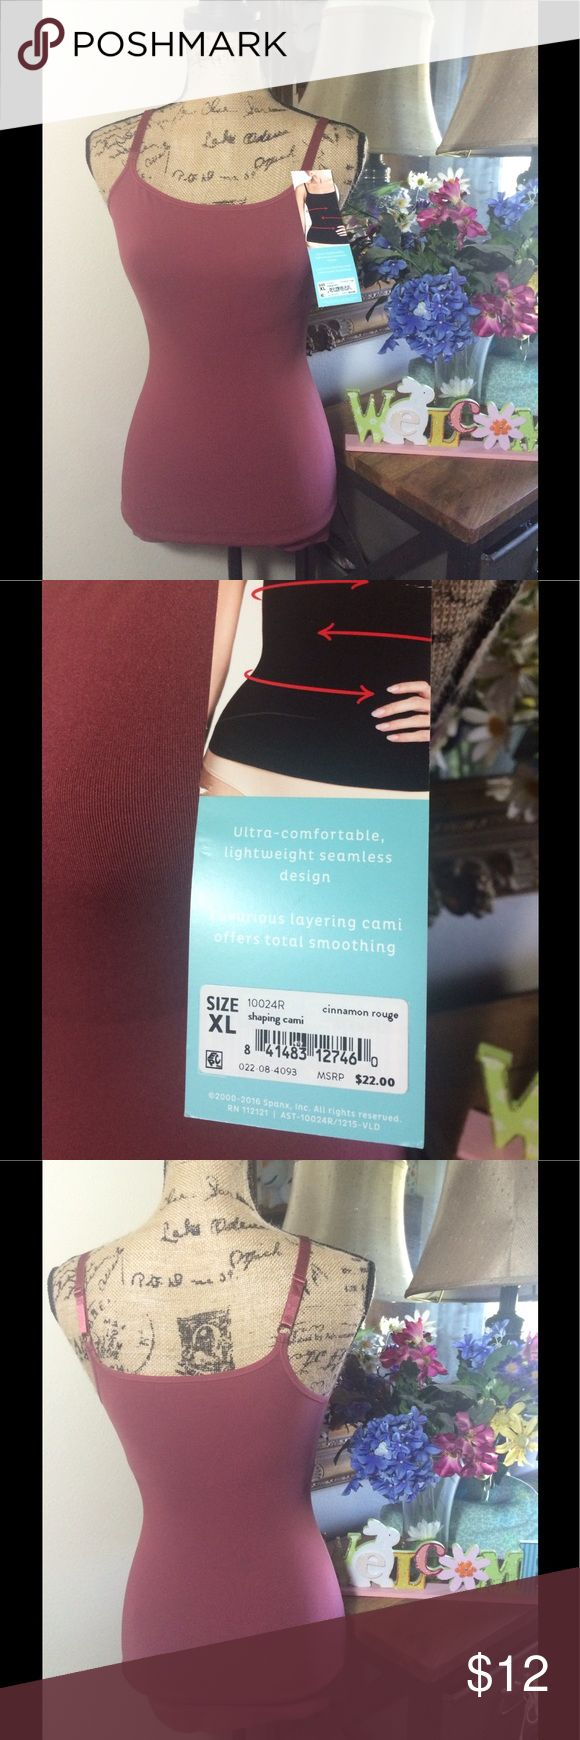 Assets by Spanx Pink Shaping Cami NWT Assets by Spanx Pink Shaping Cami NWT; this is brand new and not used; size XL SPANX Tops Camisoles